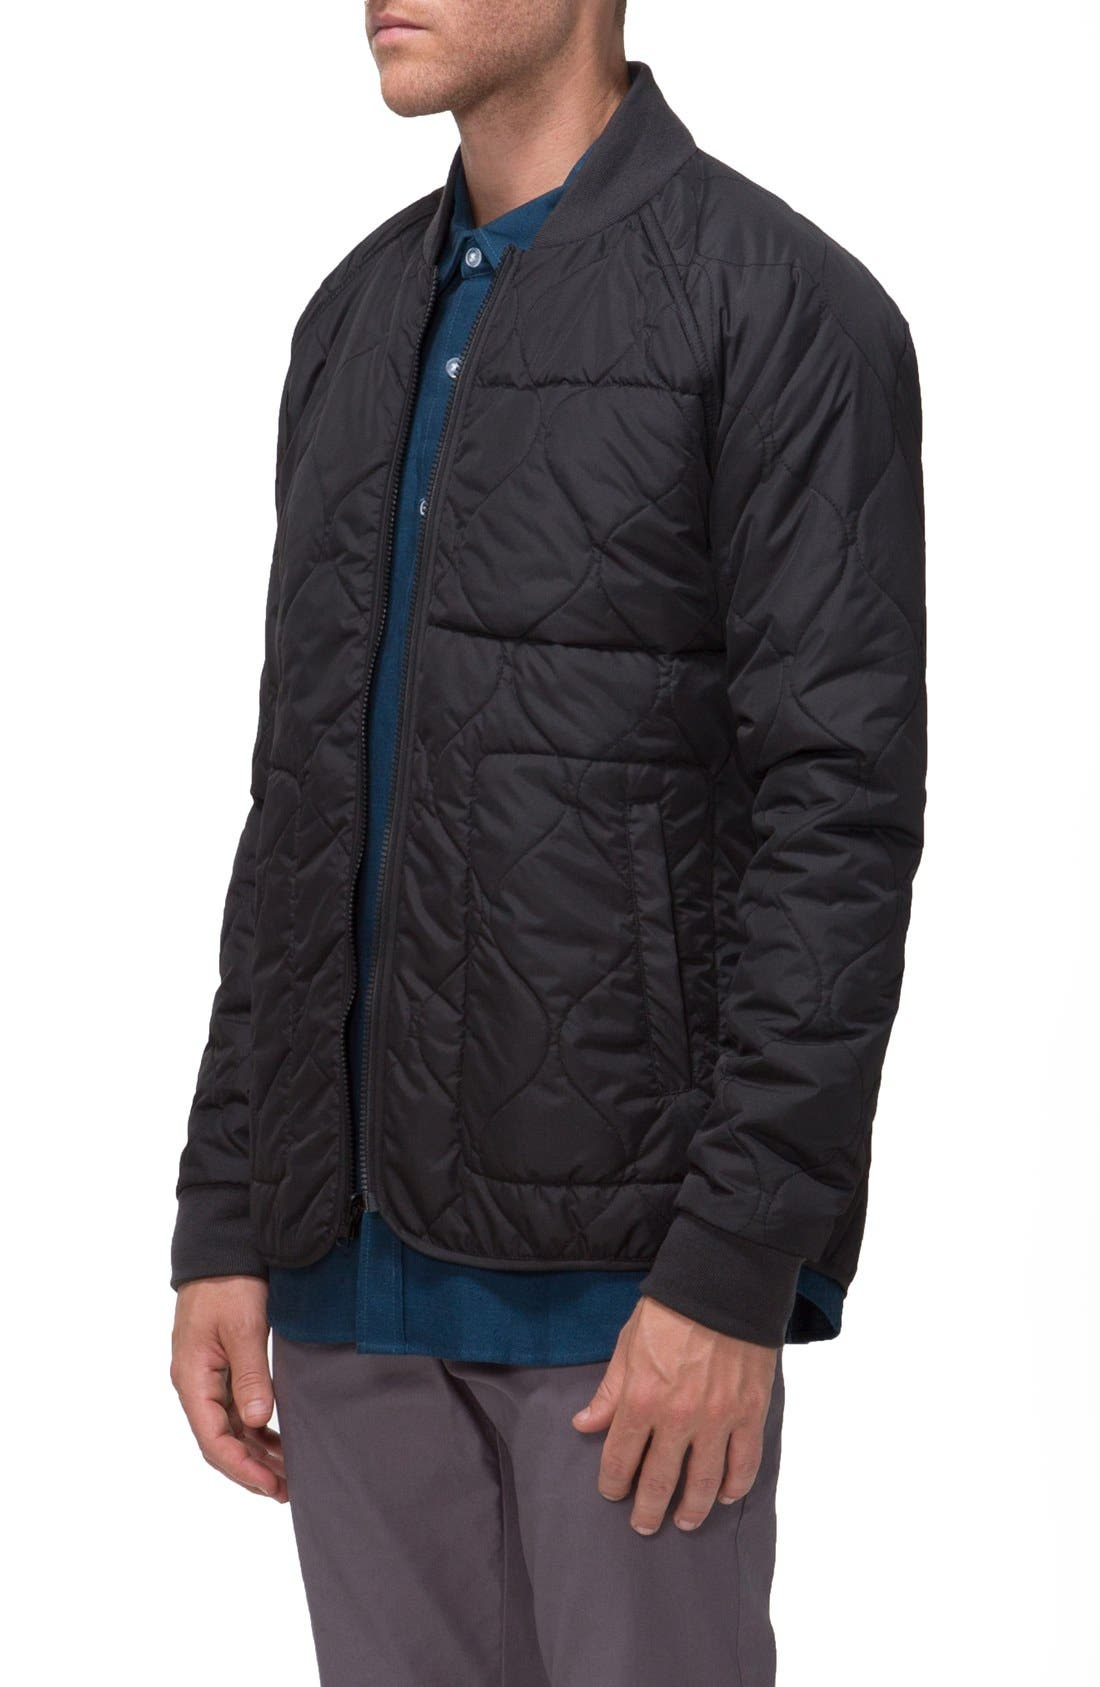 Fullton Zip-In Compatible Quilted Bomber Jacket,                             Alternate thumbnail 3, color,                             001